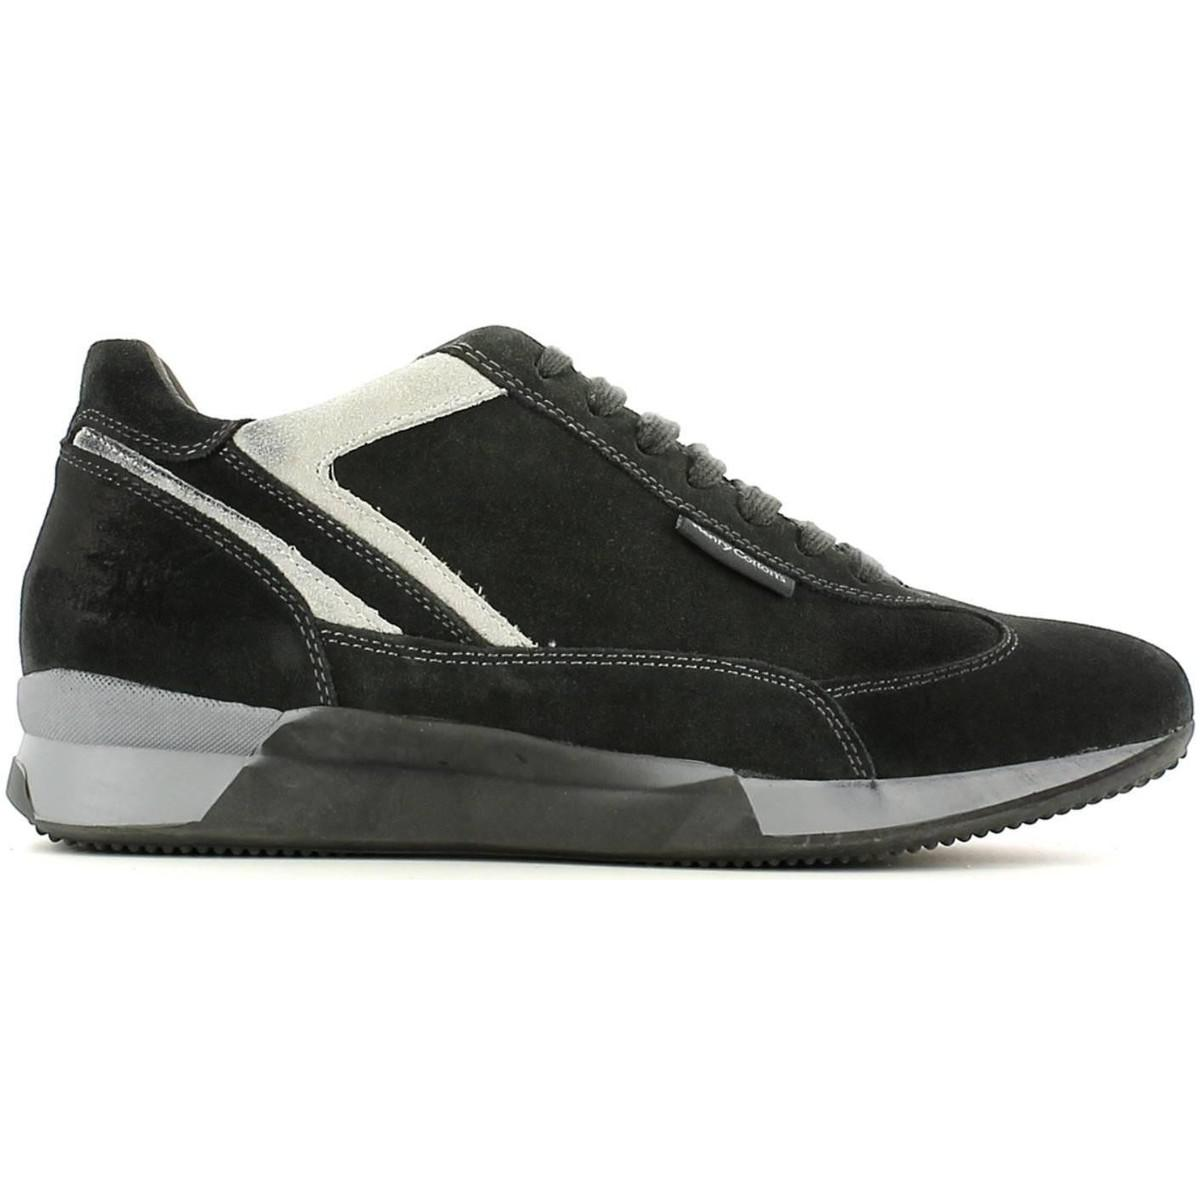 Henry cotton's Sneakers Man Anthracite i54jp7